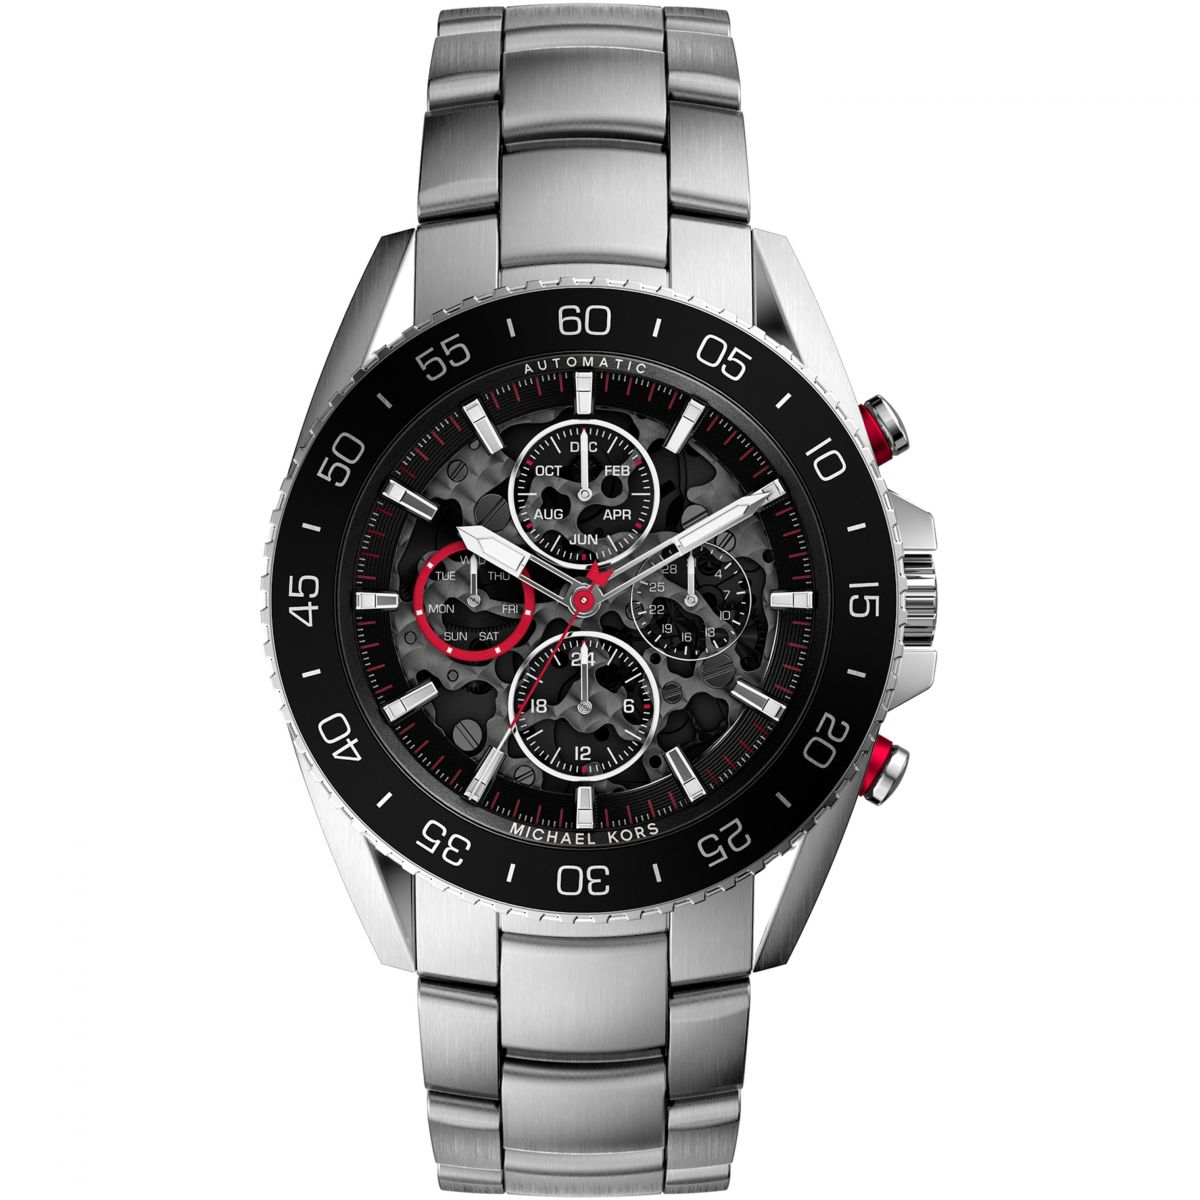 Gents Michael Kors Jet Master Watch MK WatchShopcom - Invoice sample word michael kors outlet online store